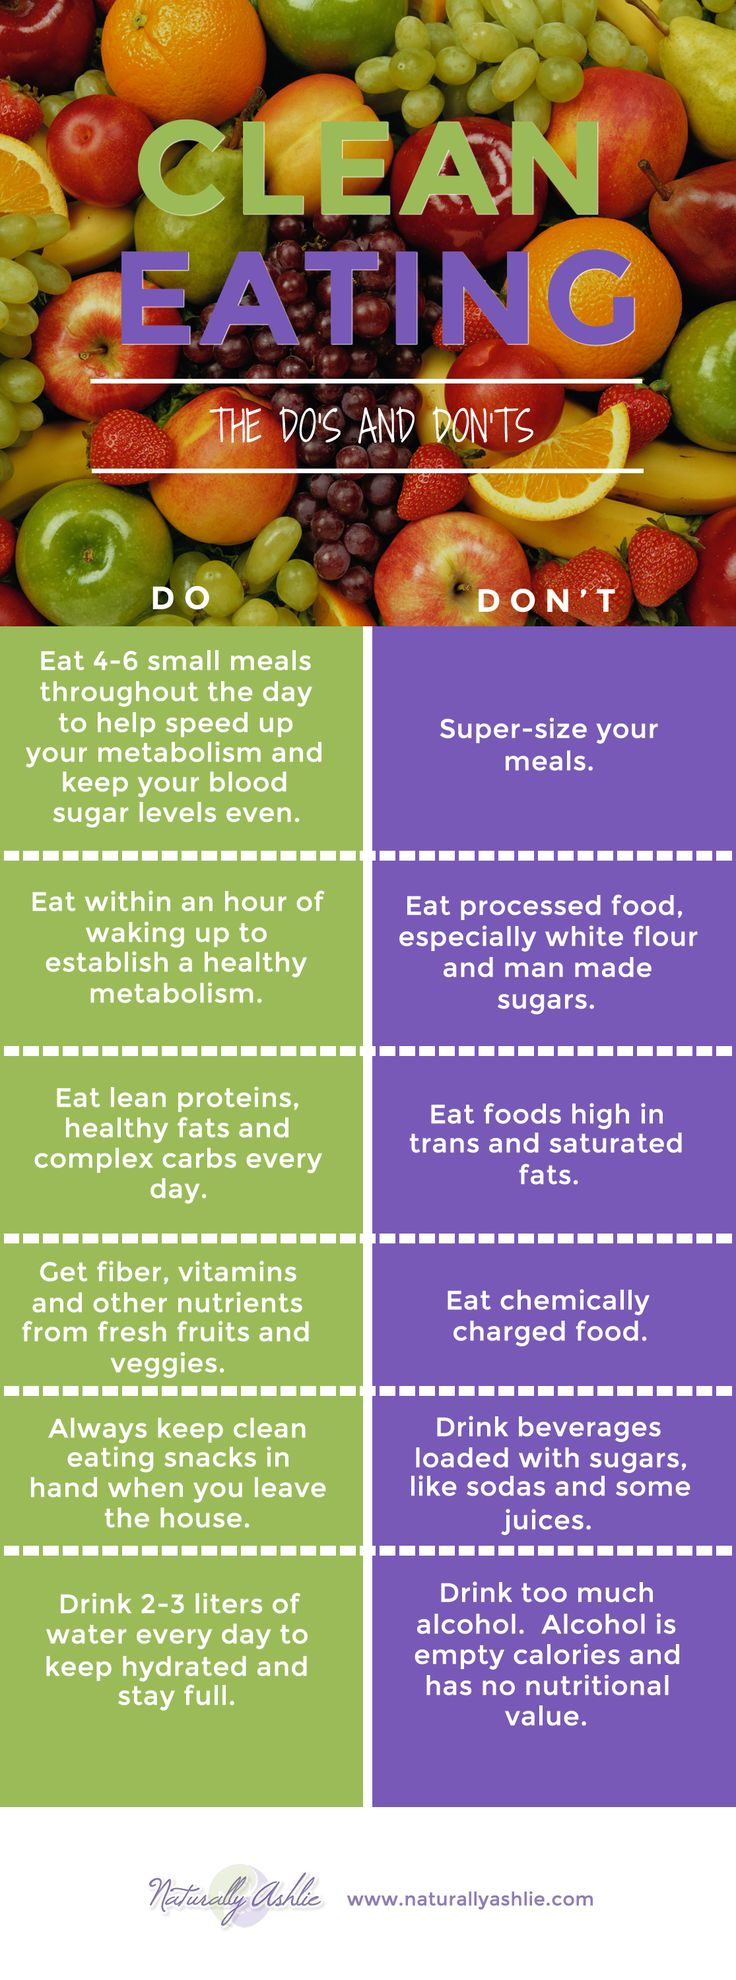 Clean eating doesn't have to be hard! Cut the excuses and find a way to eat clean that works for you.